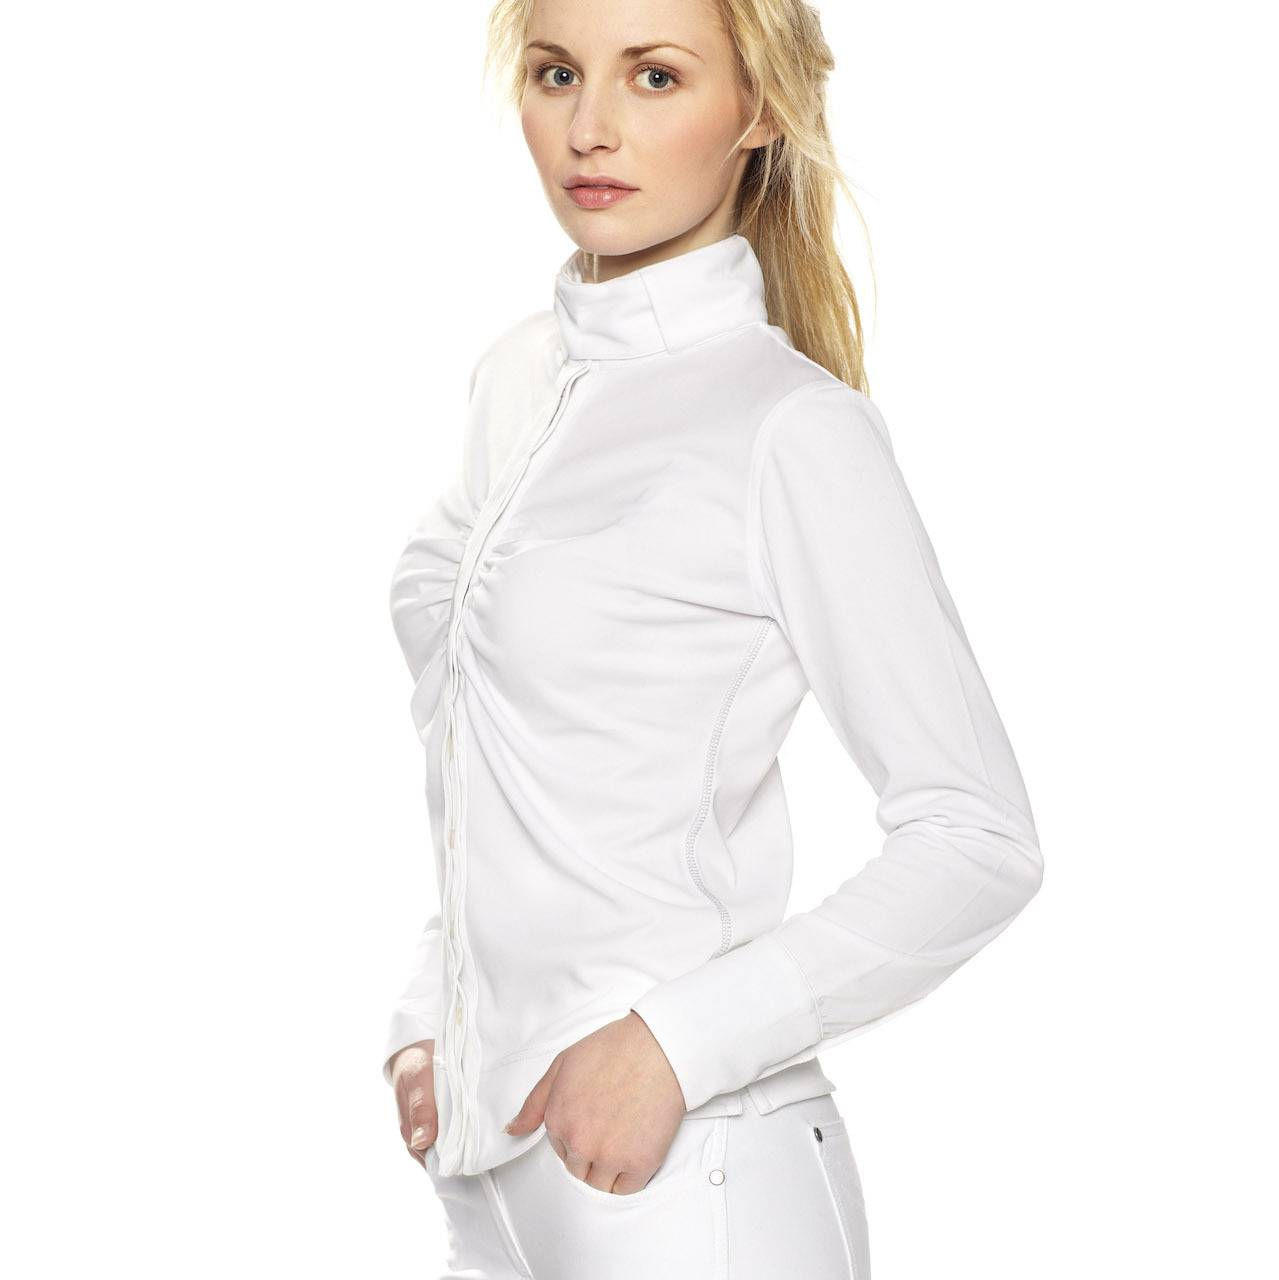 Gersemi Ladies Long Sleeve Button Competition Shirt - White